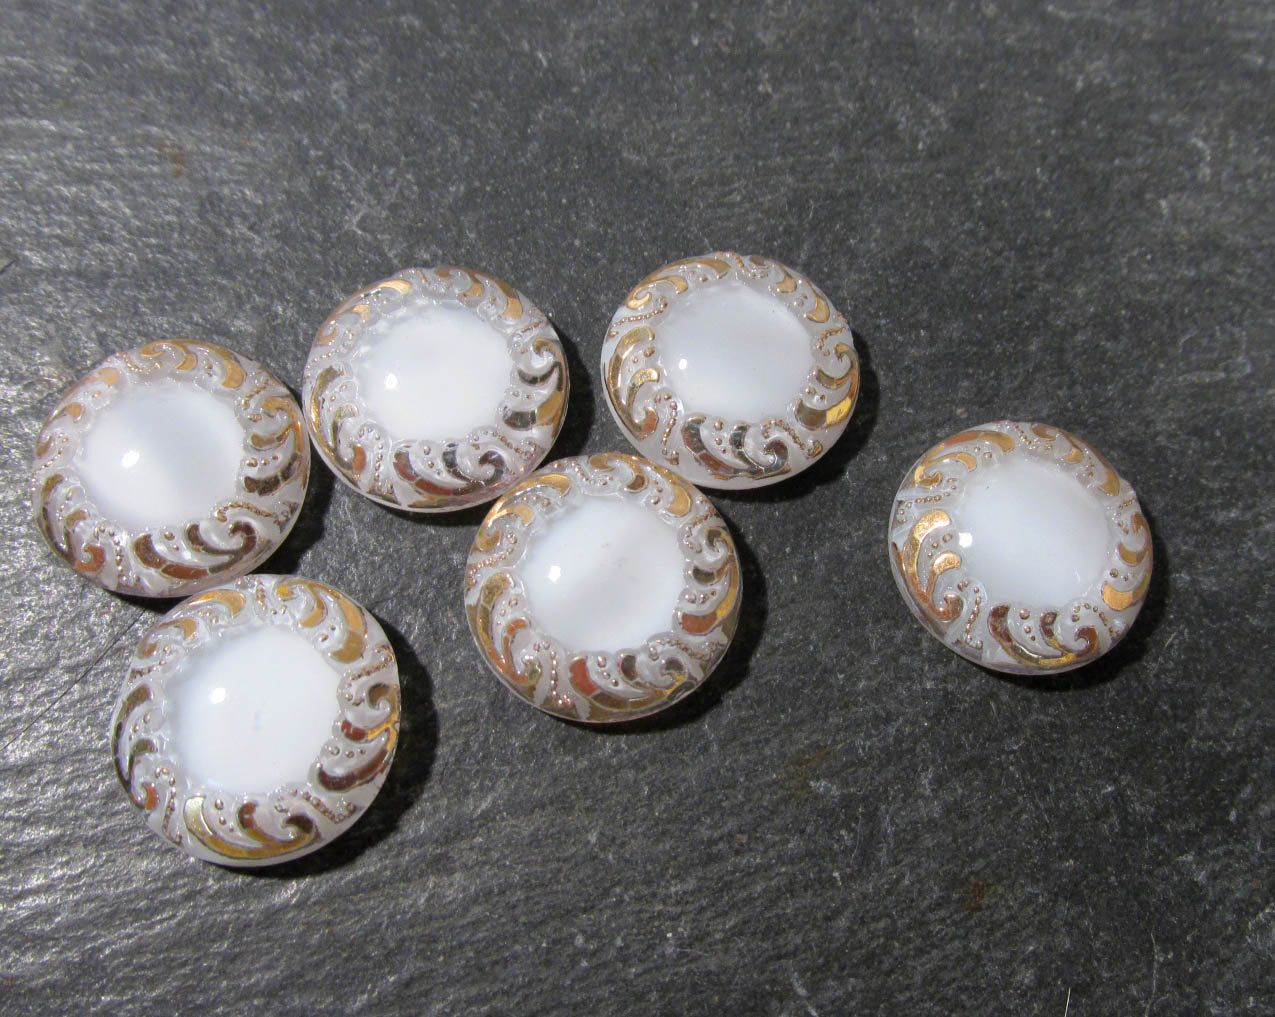 White Moonglow Glass Shankless Buttons West Germany VINTAGE White Luster Buttons Six (6) Vintage Buttons Jewelry Sewing Supplies (F188) by punksrus on Etsy